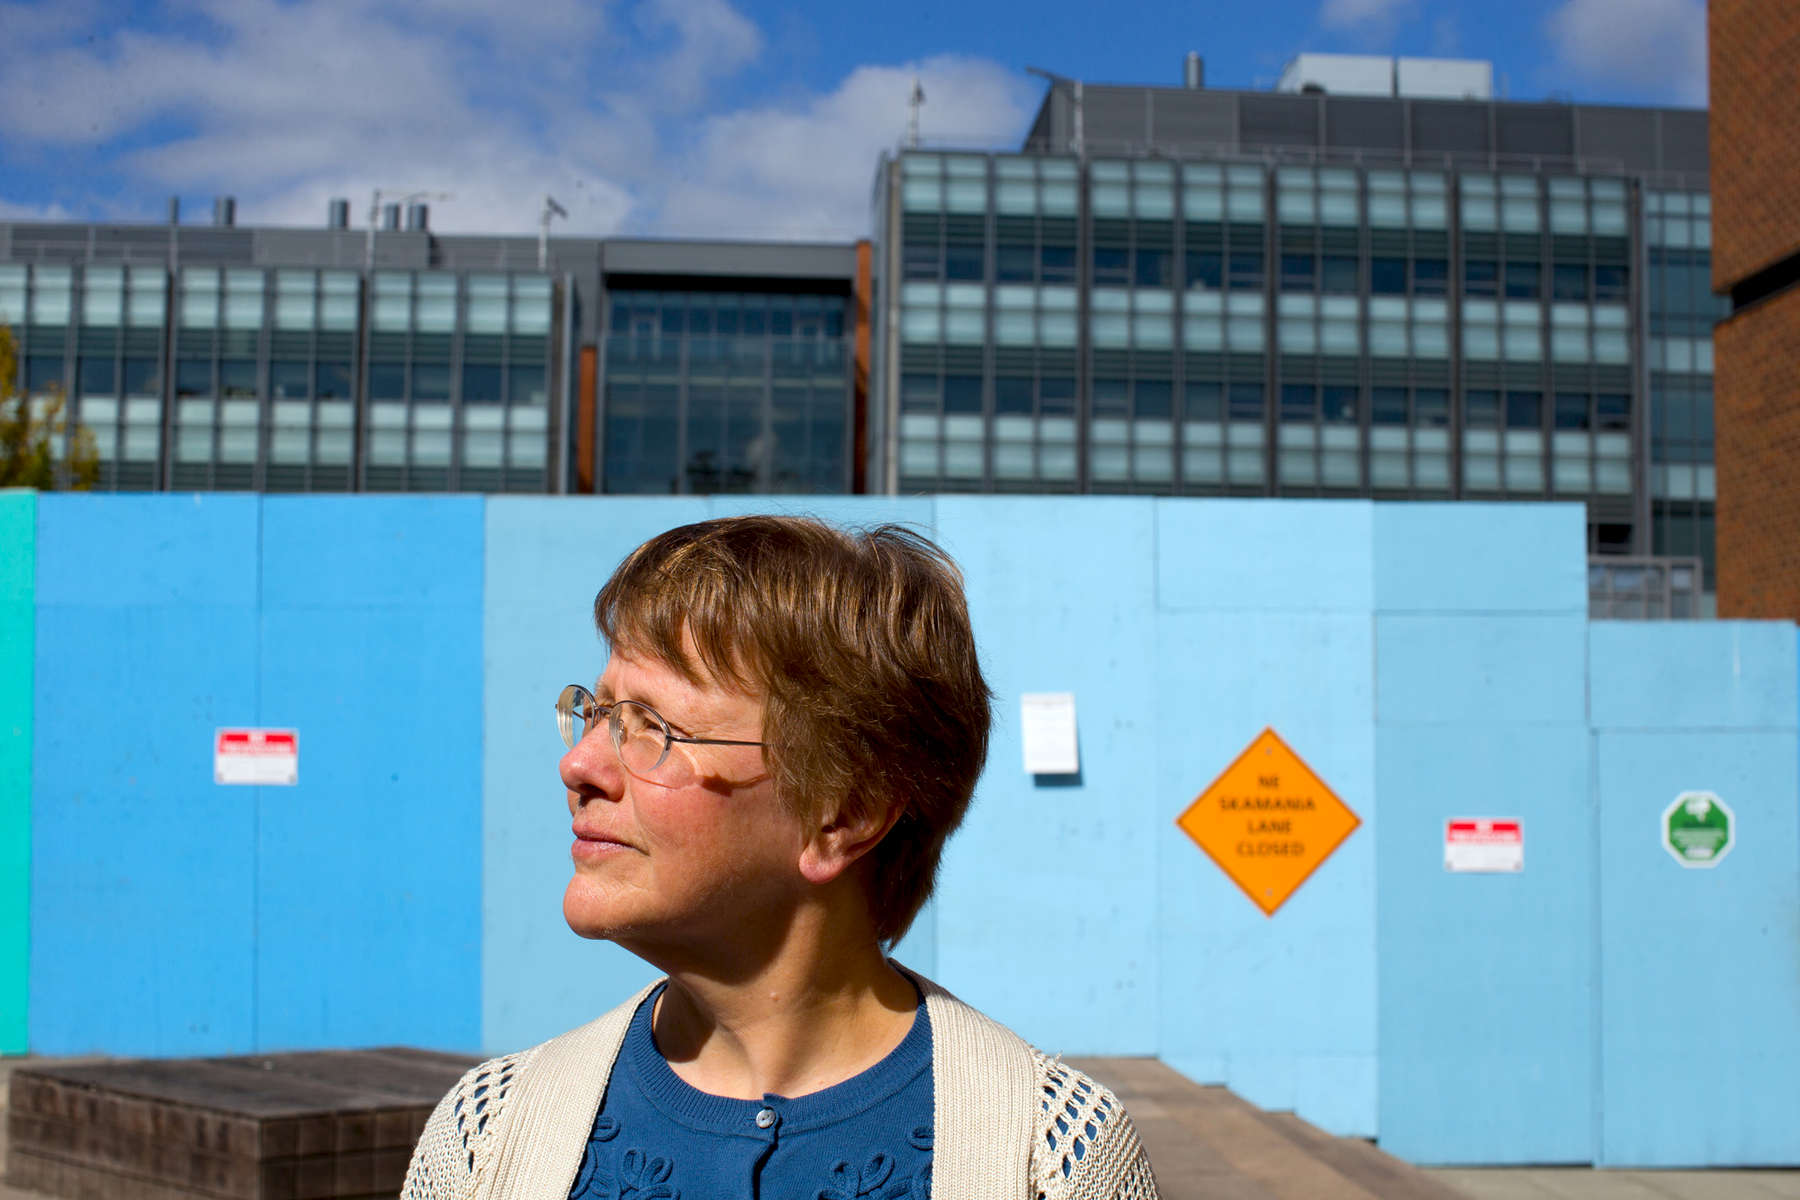 Kathy Bentson, a former research scientist in the Primate Center at the University of Washington, stands in front of a tall, blue wooden wall bearing No Trespassing signs that blocks the public's view of the construction of the new underground animal research lab in Seattle, Wash. on September 21, 2016. In the rear is the William H. Foege Building for Bioengineering and Genome Sciences. Bentson is trying to submit the results of a study she did with others on how to reduce the prevalence of abnormal behaviors in laboratory monkeys to peer review journals, but has met a lot of resistance from the university. (© Karen Ducey Photography)